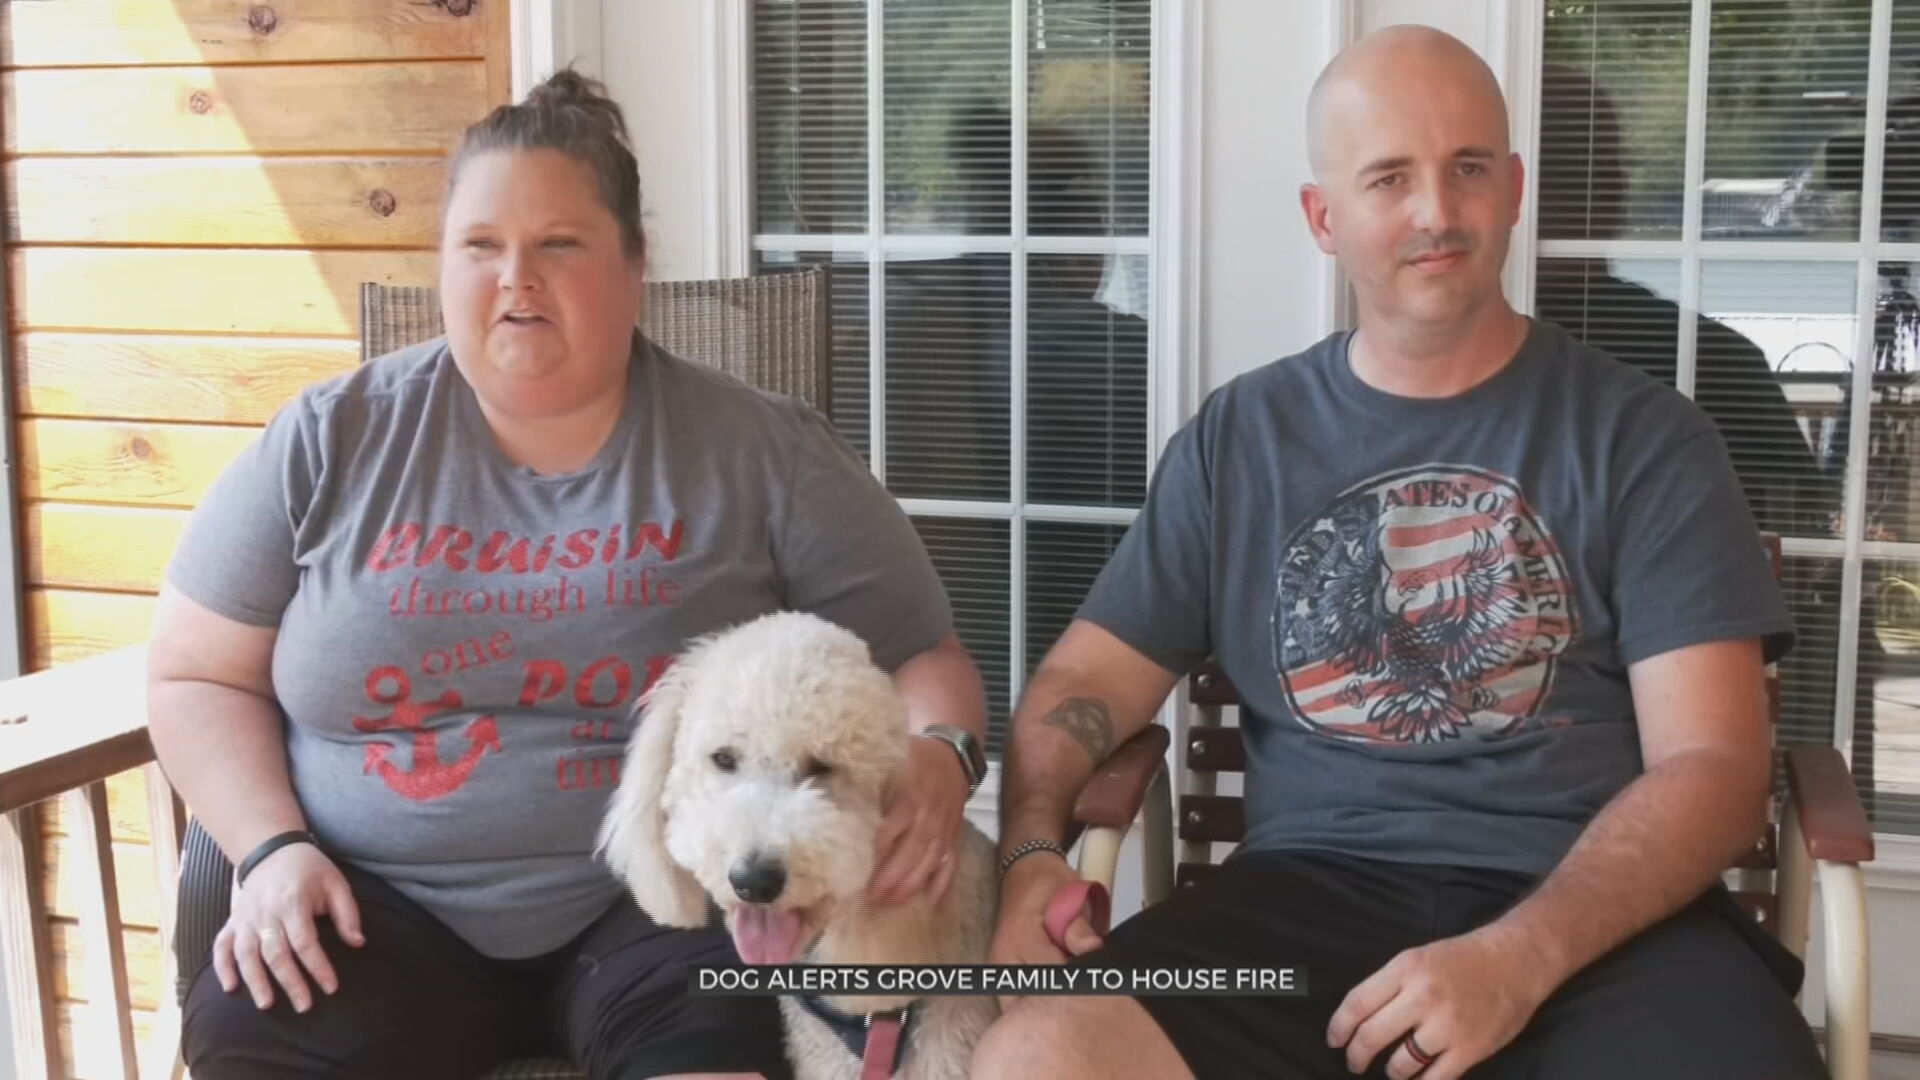 Grove Firefighter Responds To Own House Fire After Dog Alerts Family Inside